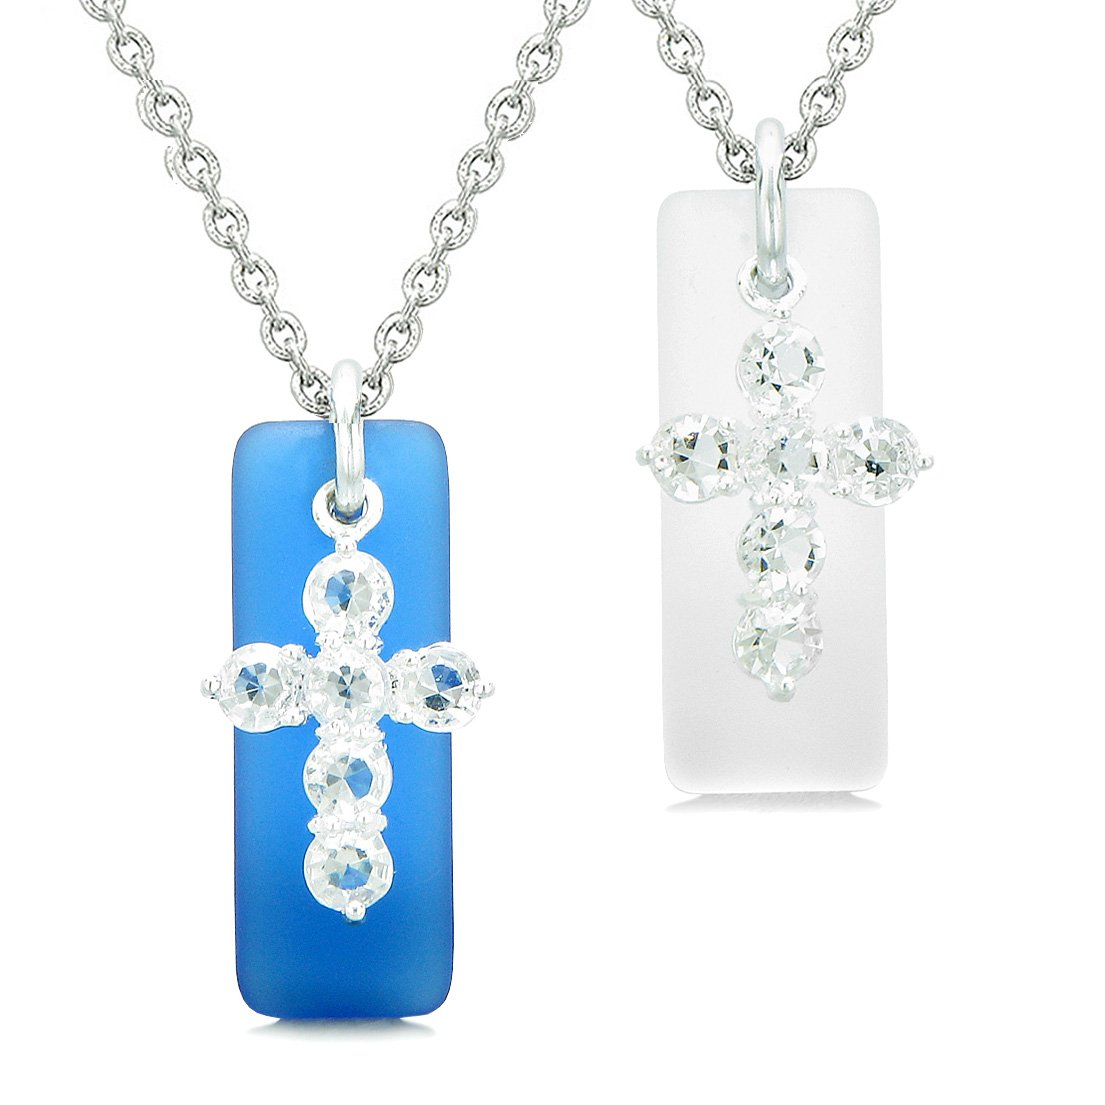 Sea Glass Ocean Blue and Mist White Tags Crystal Cross Love Couples BFF Set Protection Amulet Necklaces